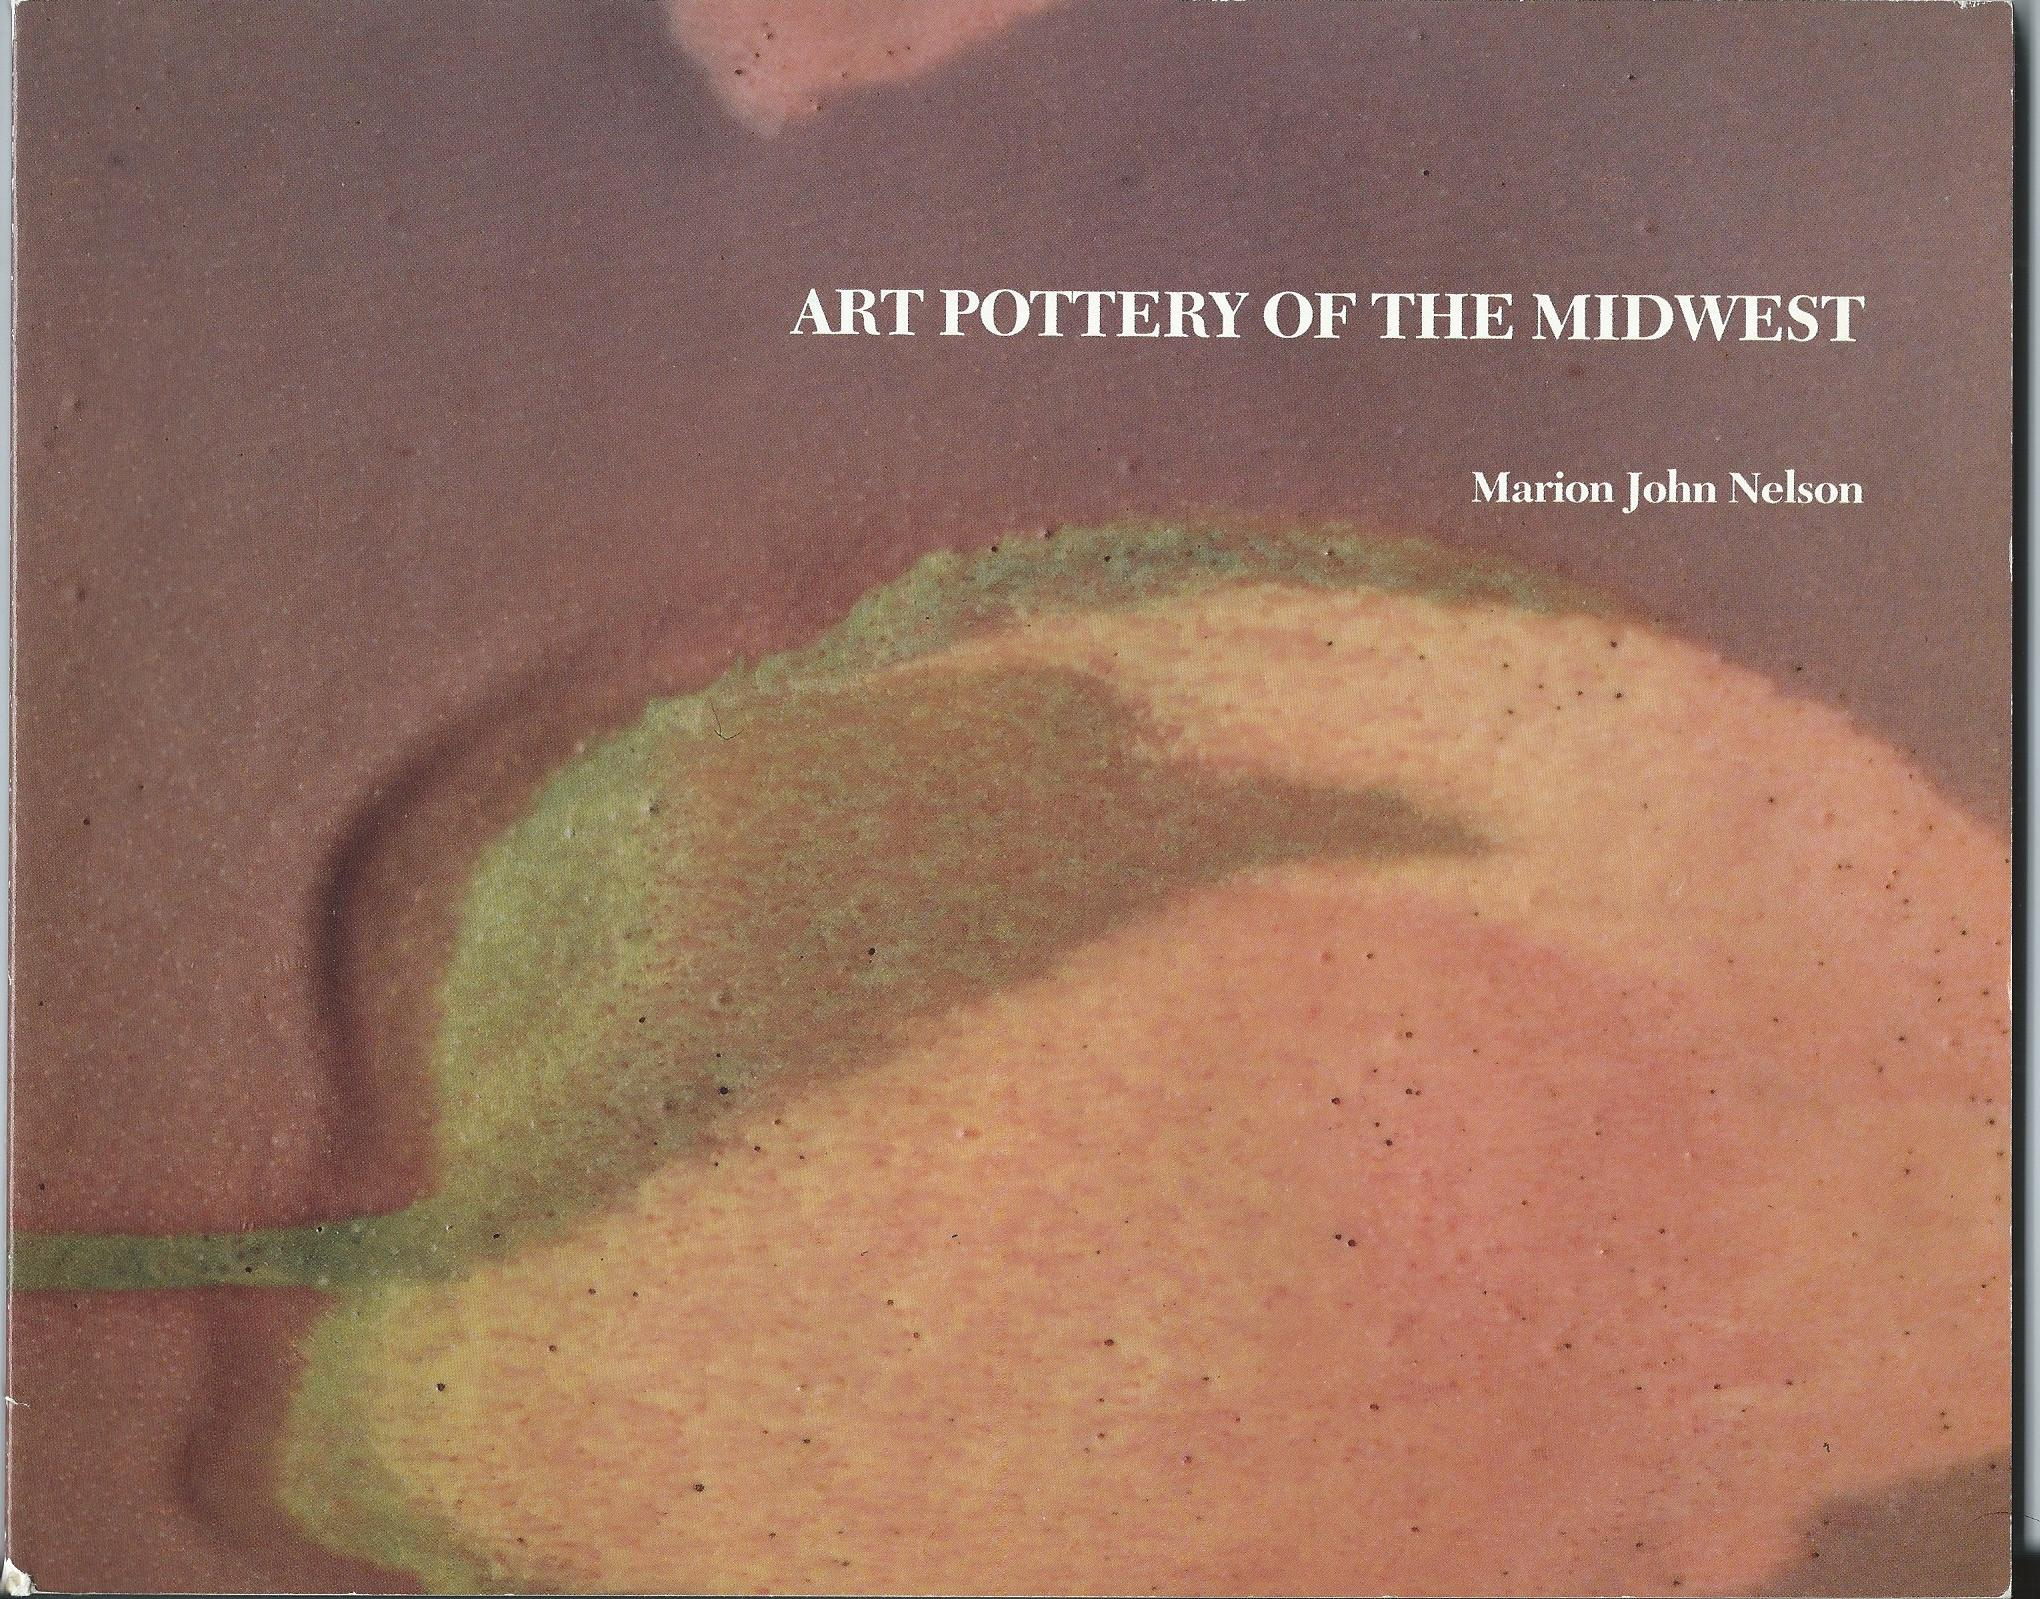 Image for November 10, 1988 - January 8, 1989; ART POTTERY OF THE MIDWEST